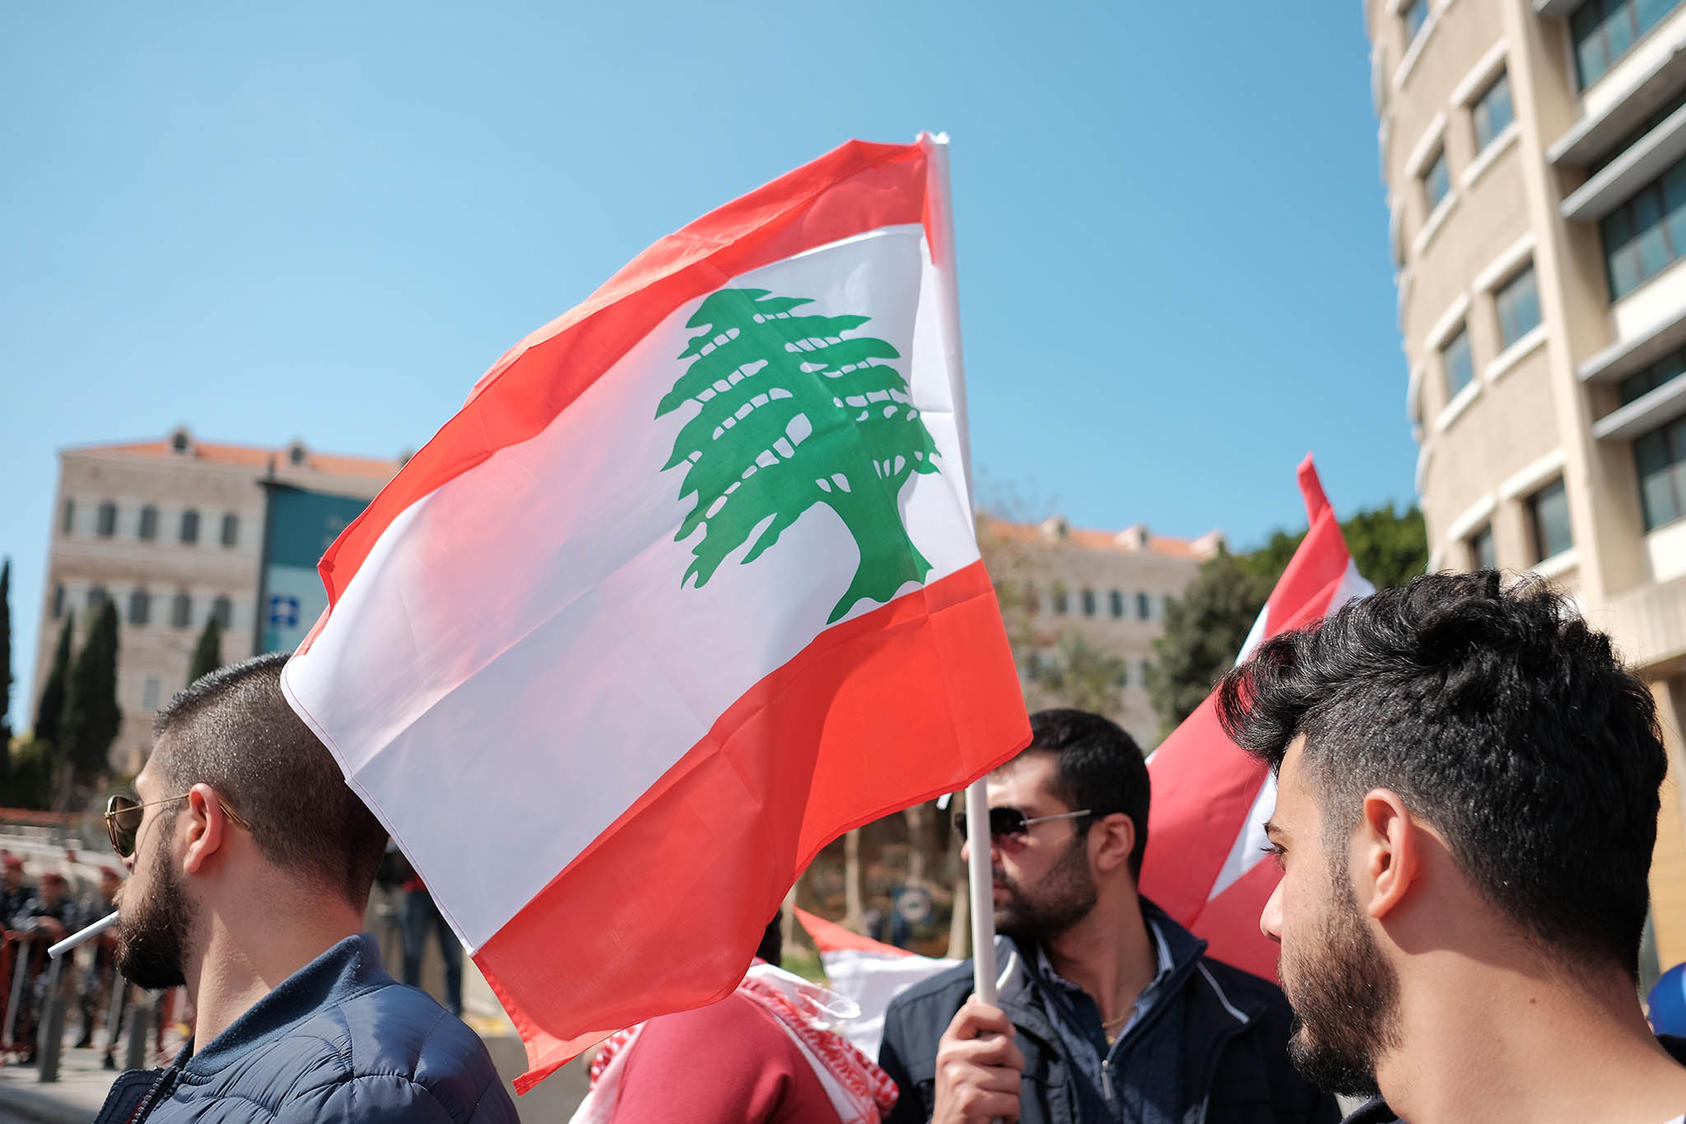 Lebanese protesters with Lebanese flag. (Photo Credit: Jeff Merheb / Shutterstock.com)